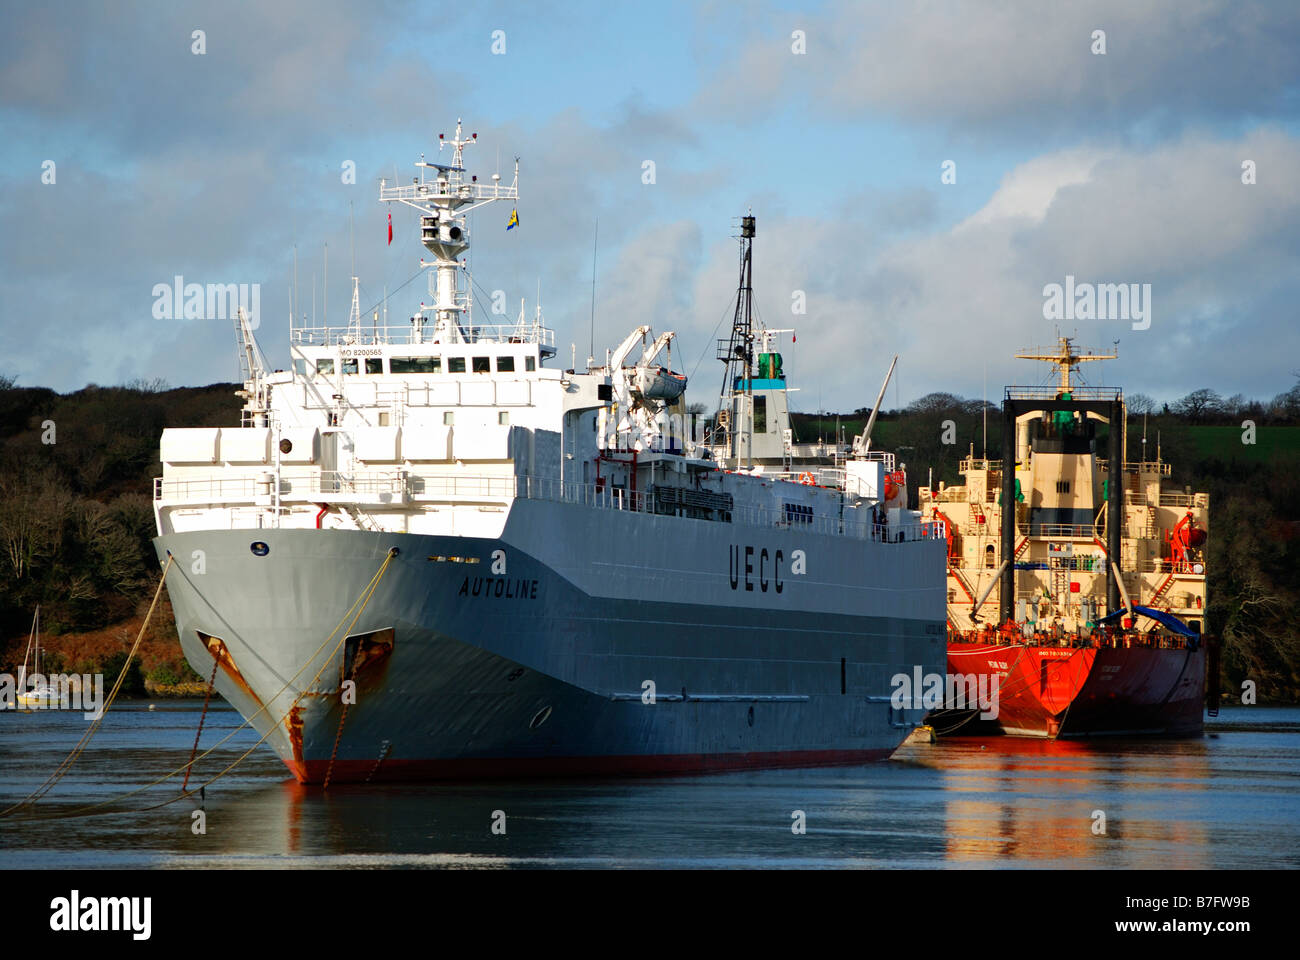 cargo ships 'laid up' in the river fal near truro,cornwall,uk - Stock Image